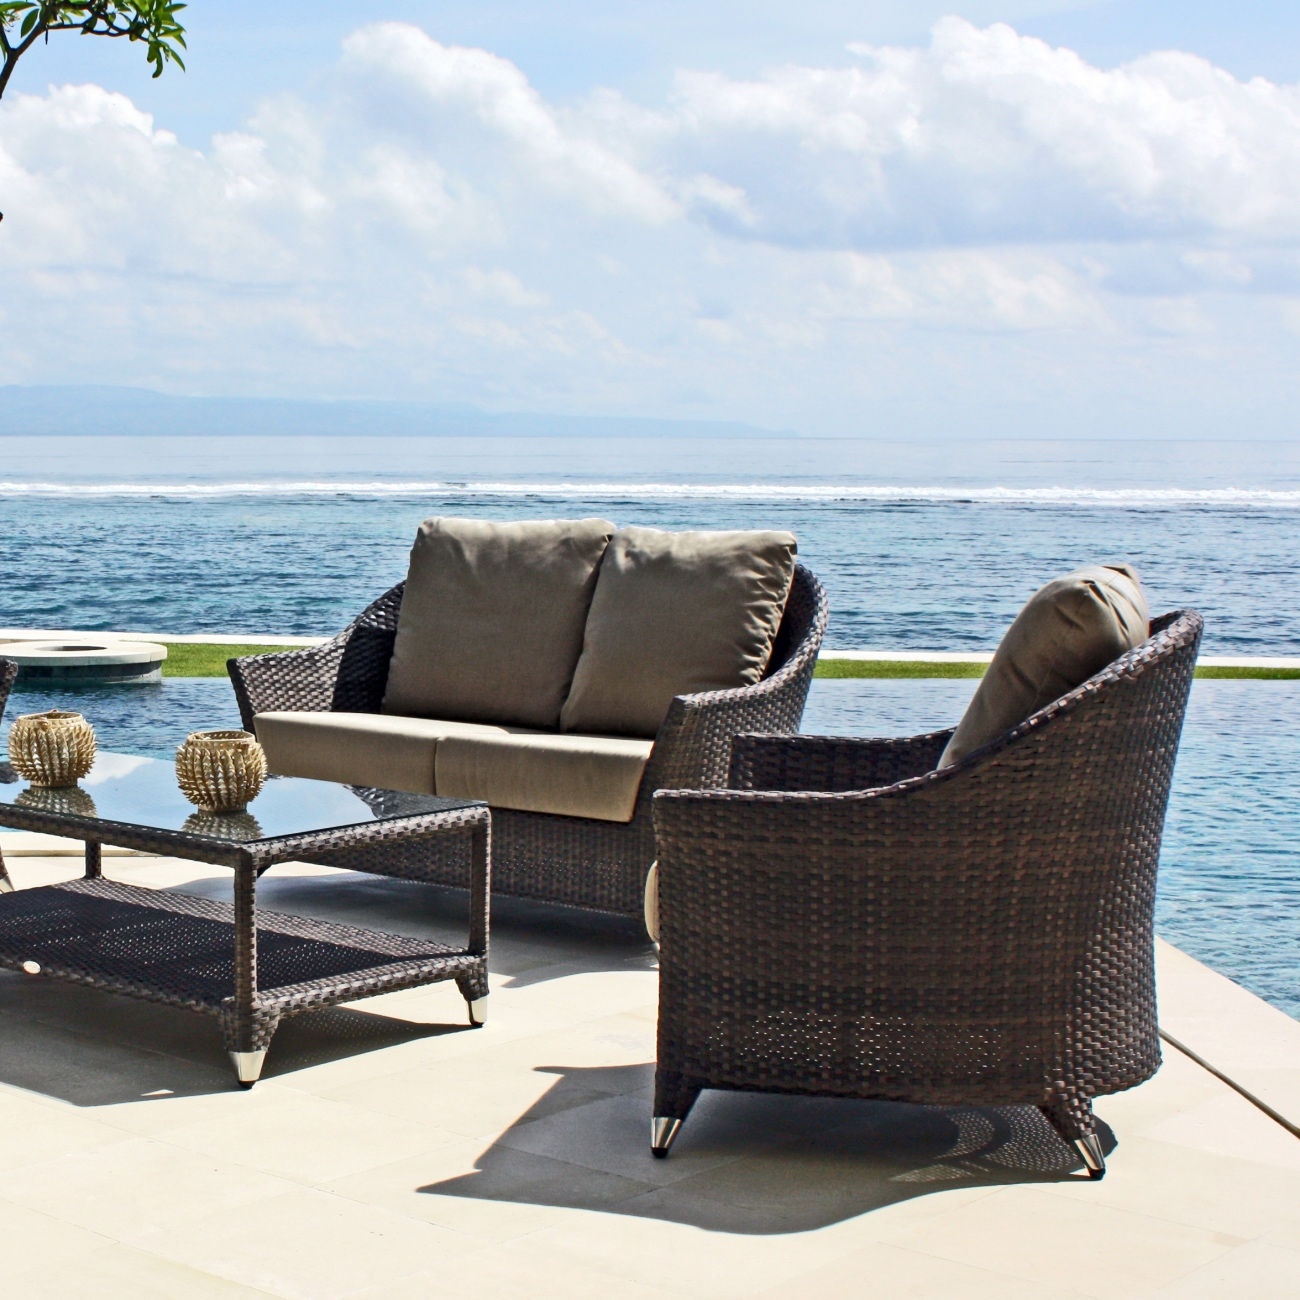 chair covers malta make your own rocking cushions skyline love seat  luxury outdoor living